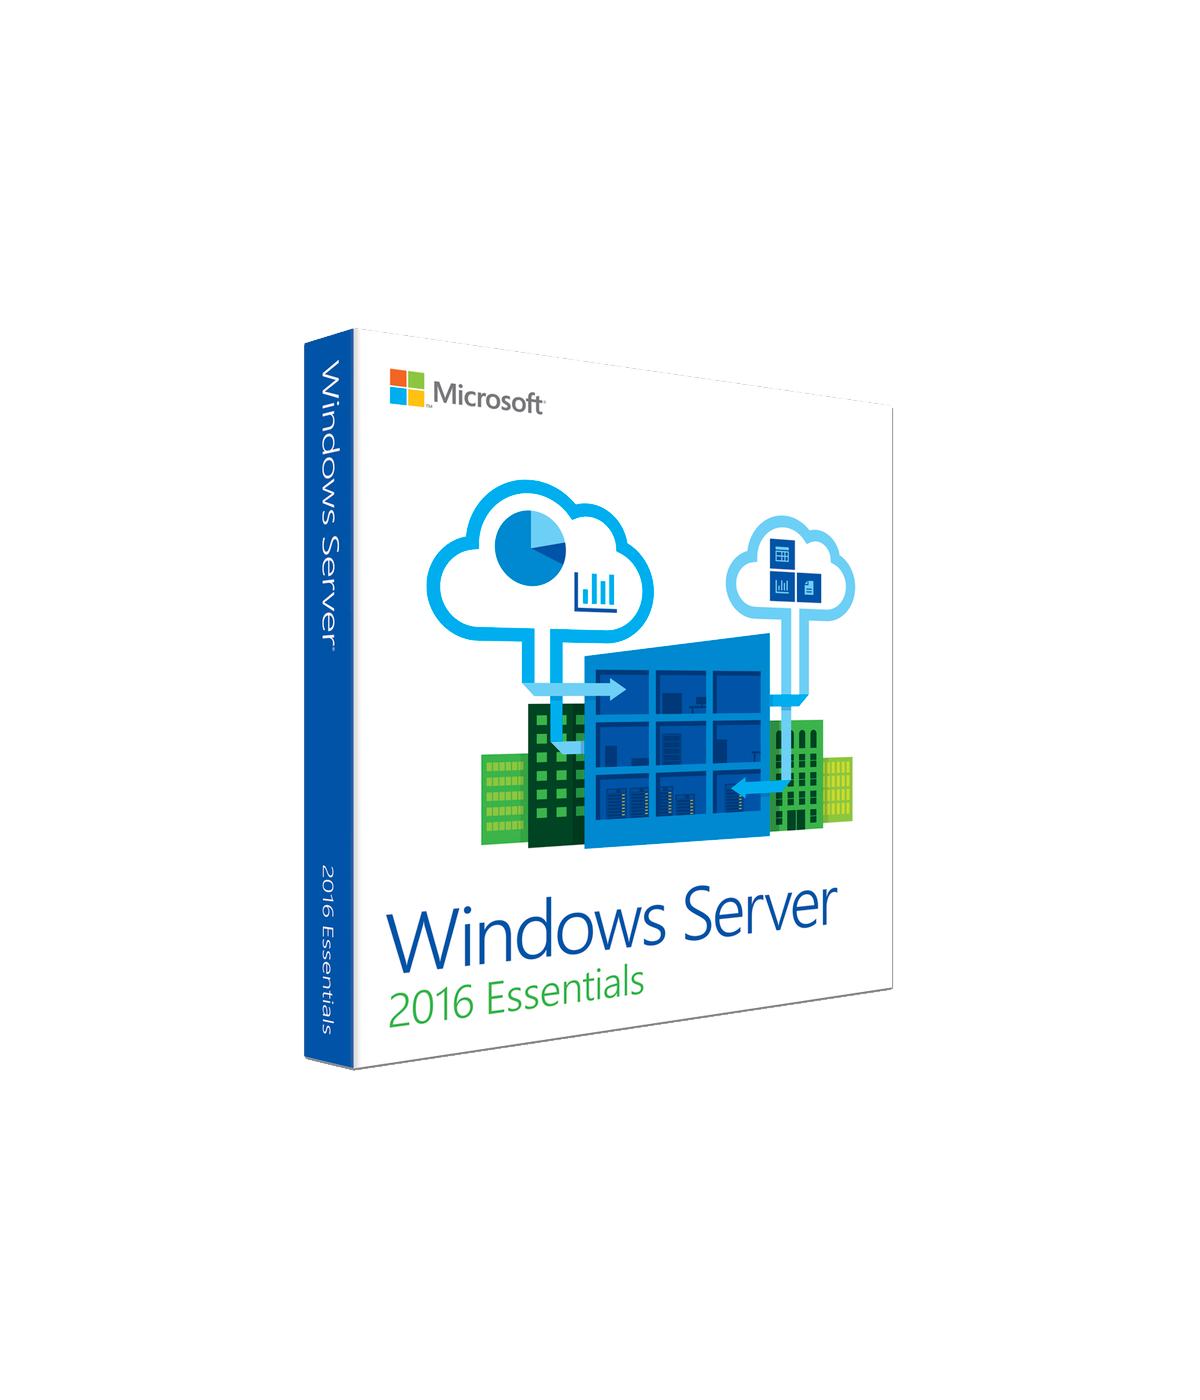 LICENCIA WINDOWS SERVER ESSENTIALS 2016 OEM 64BIT (G3S-01057)